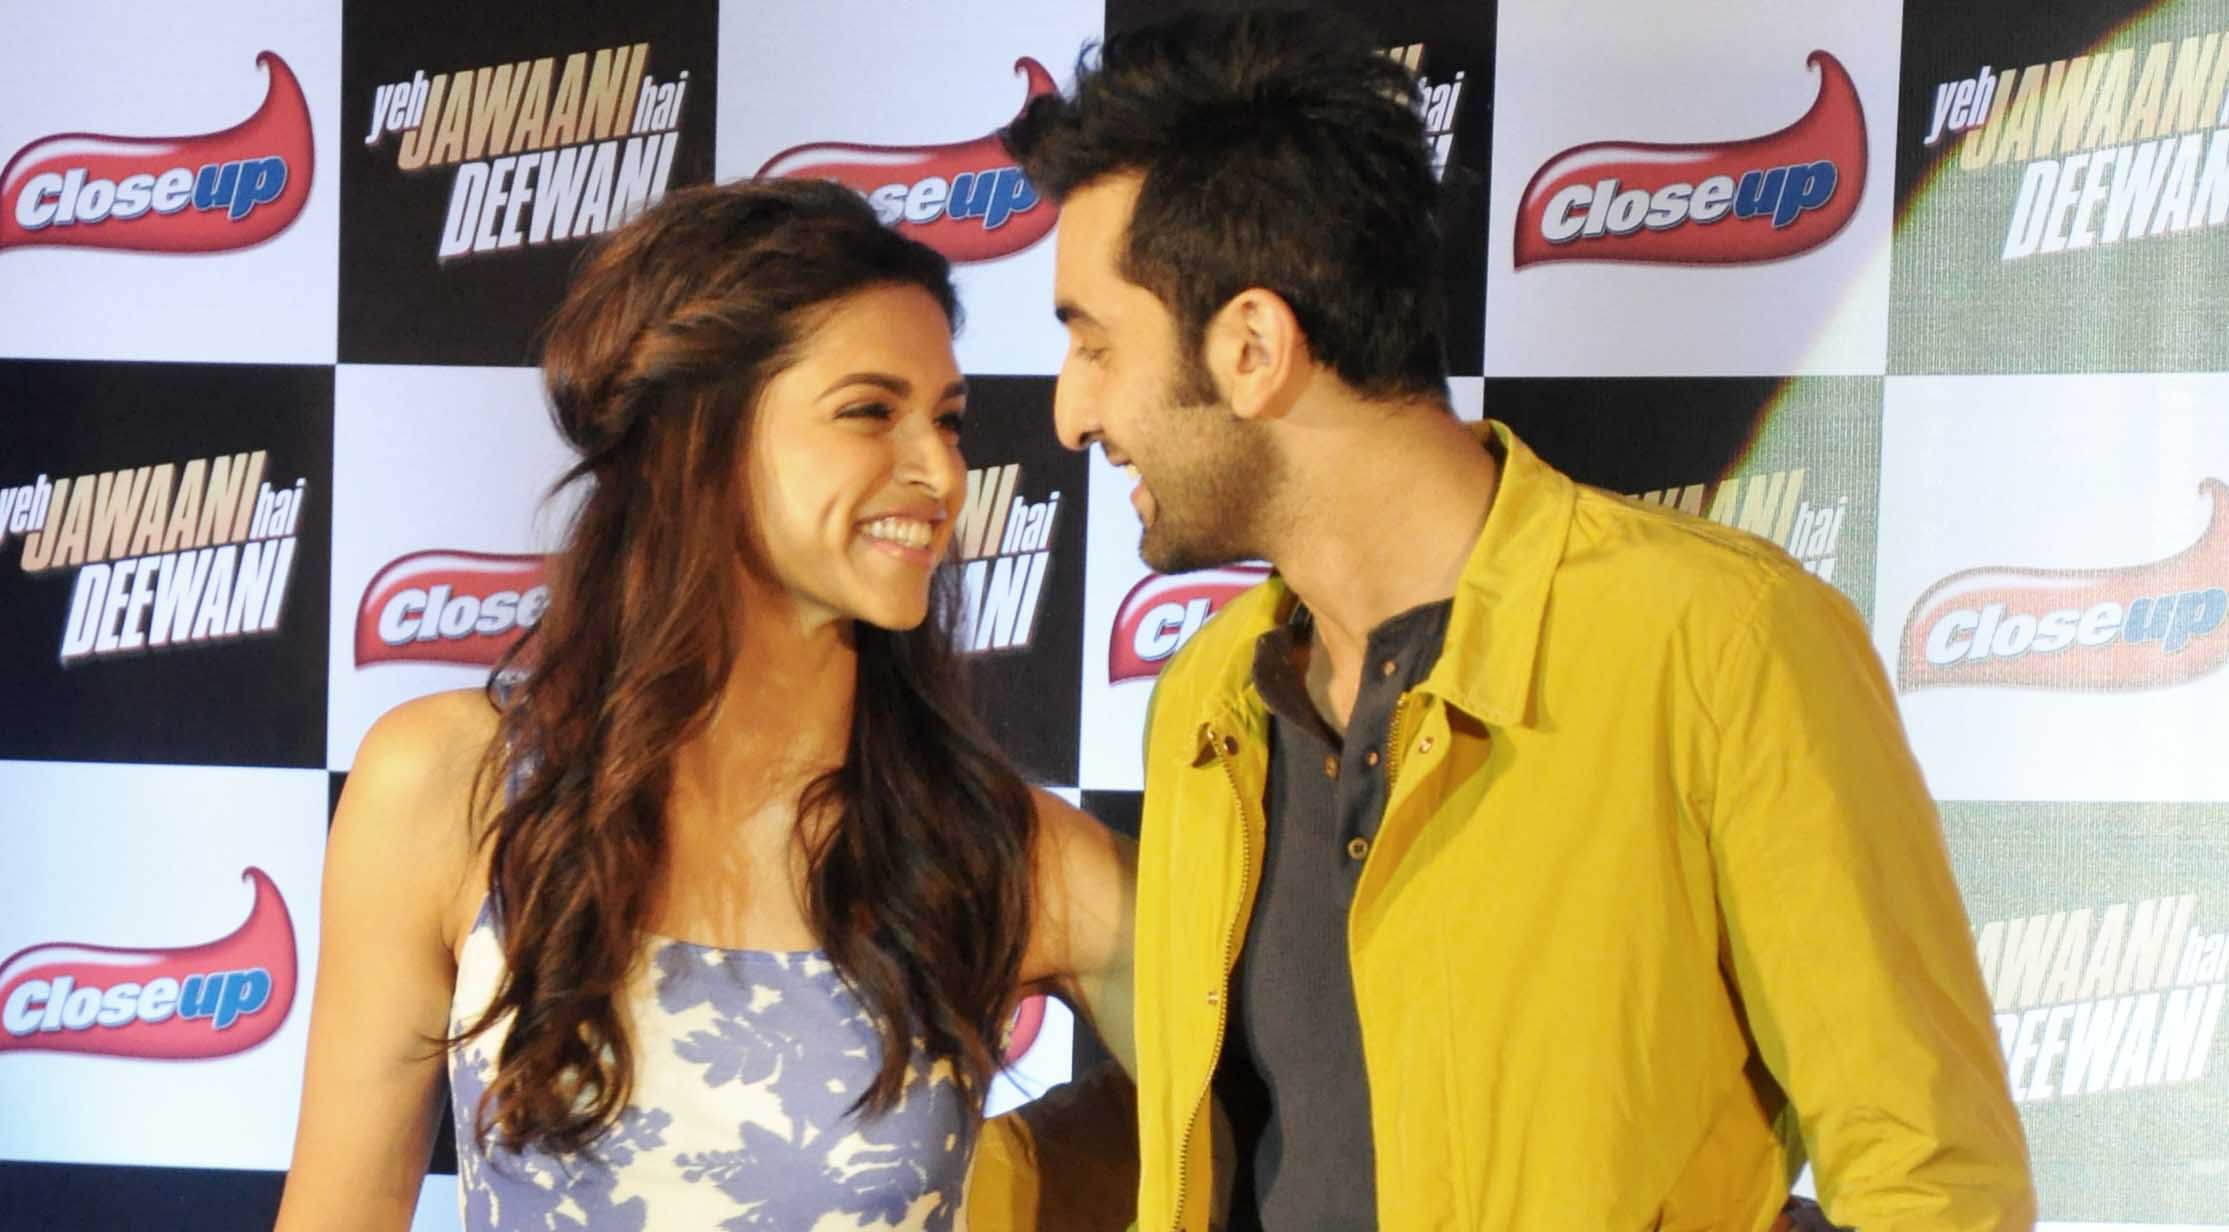 Ranbir and Deepika launch Close Up dental care products